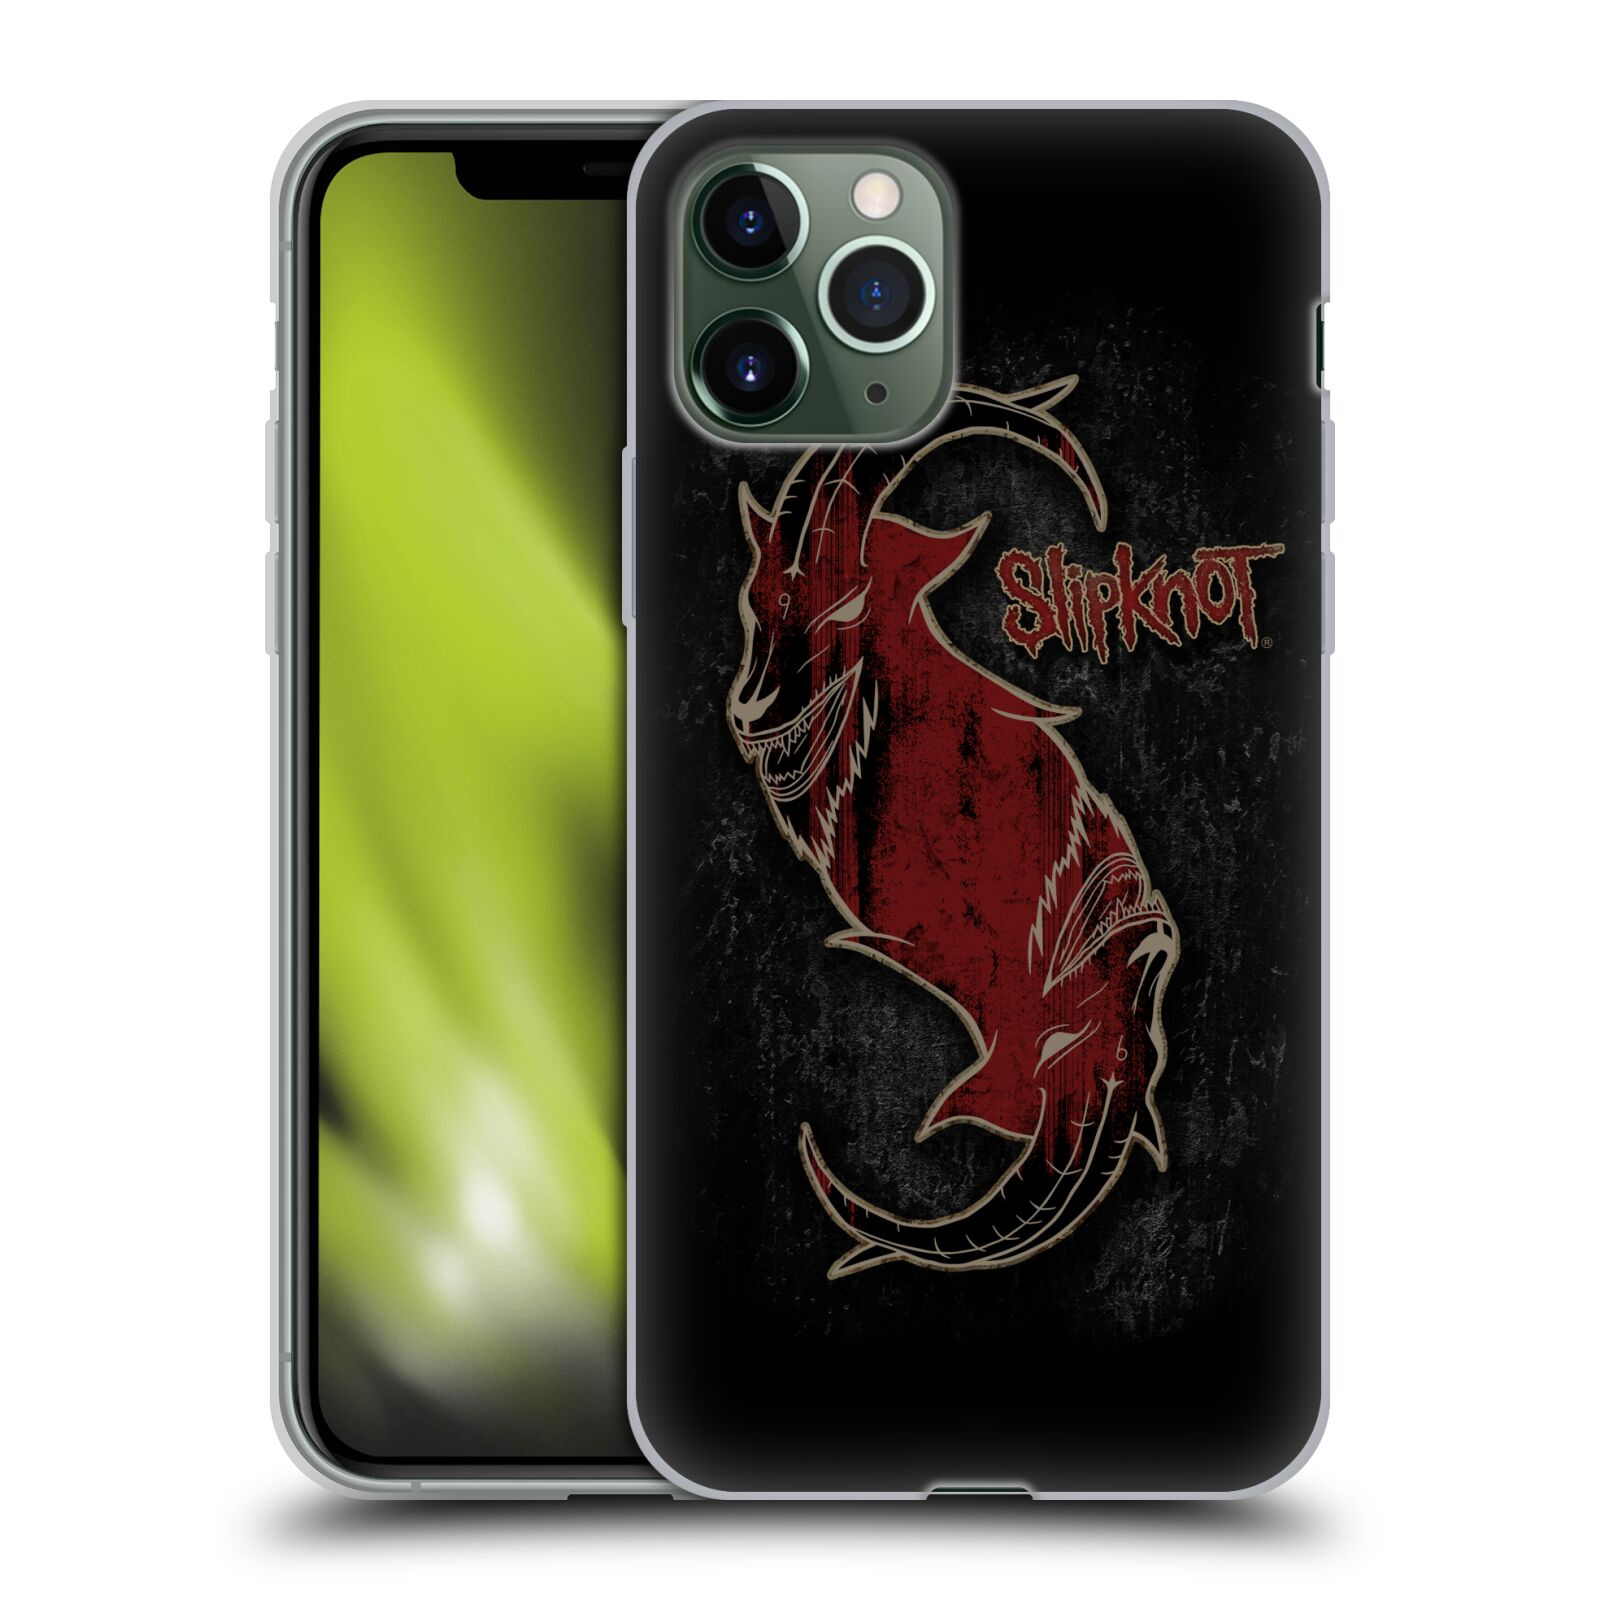 gucci phone case iphone 8 amazon - Silikonové pouzdro na mobil Apple iPhone 11 Pro - Head Case - Slipknot - Rudý kozel